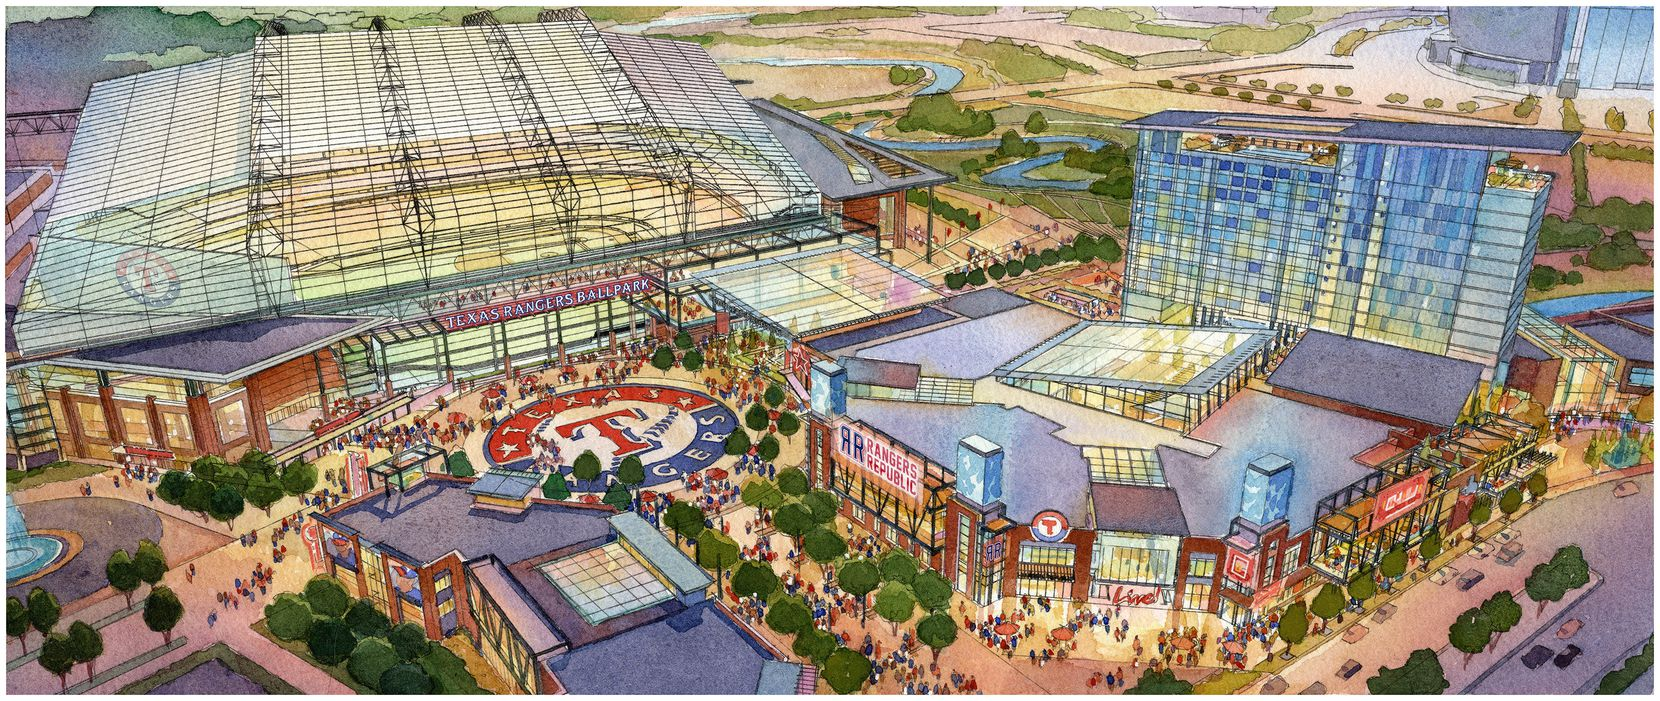 Artist rendering of proposed new Texas Rangers stadium and proposed Texas Live! development